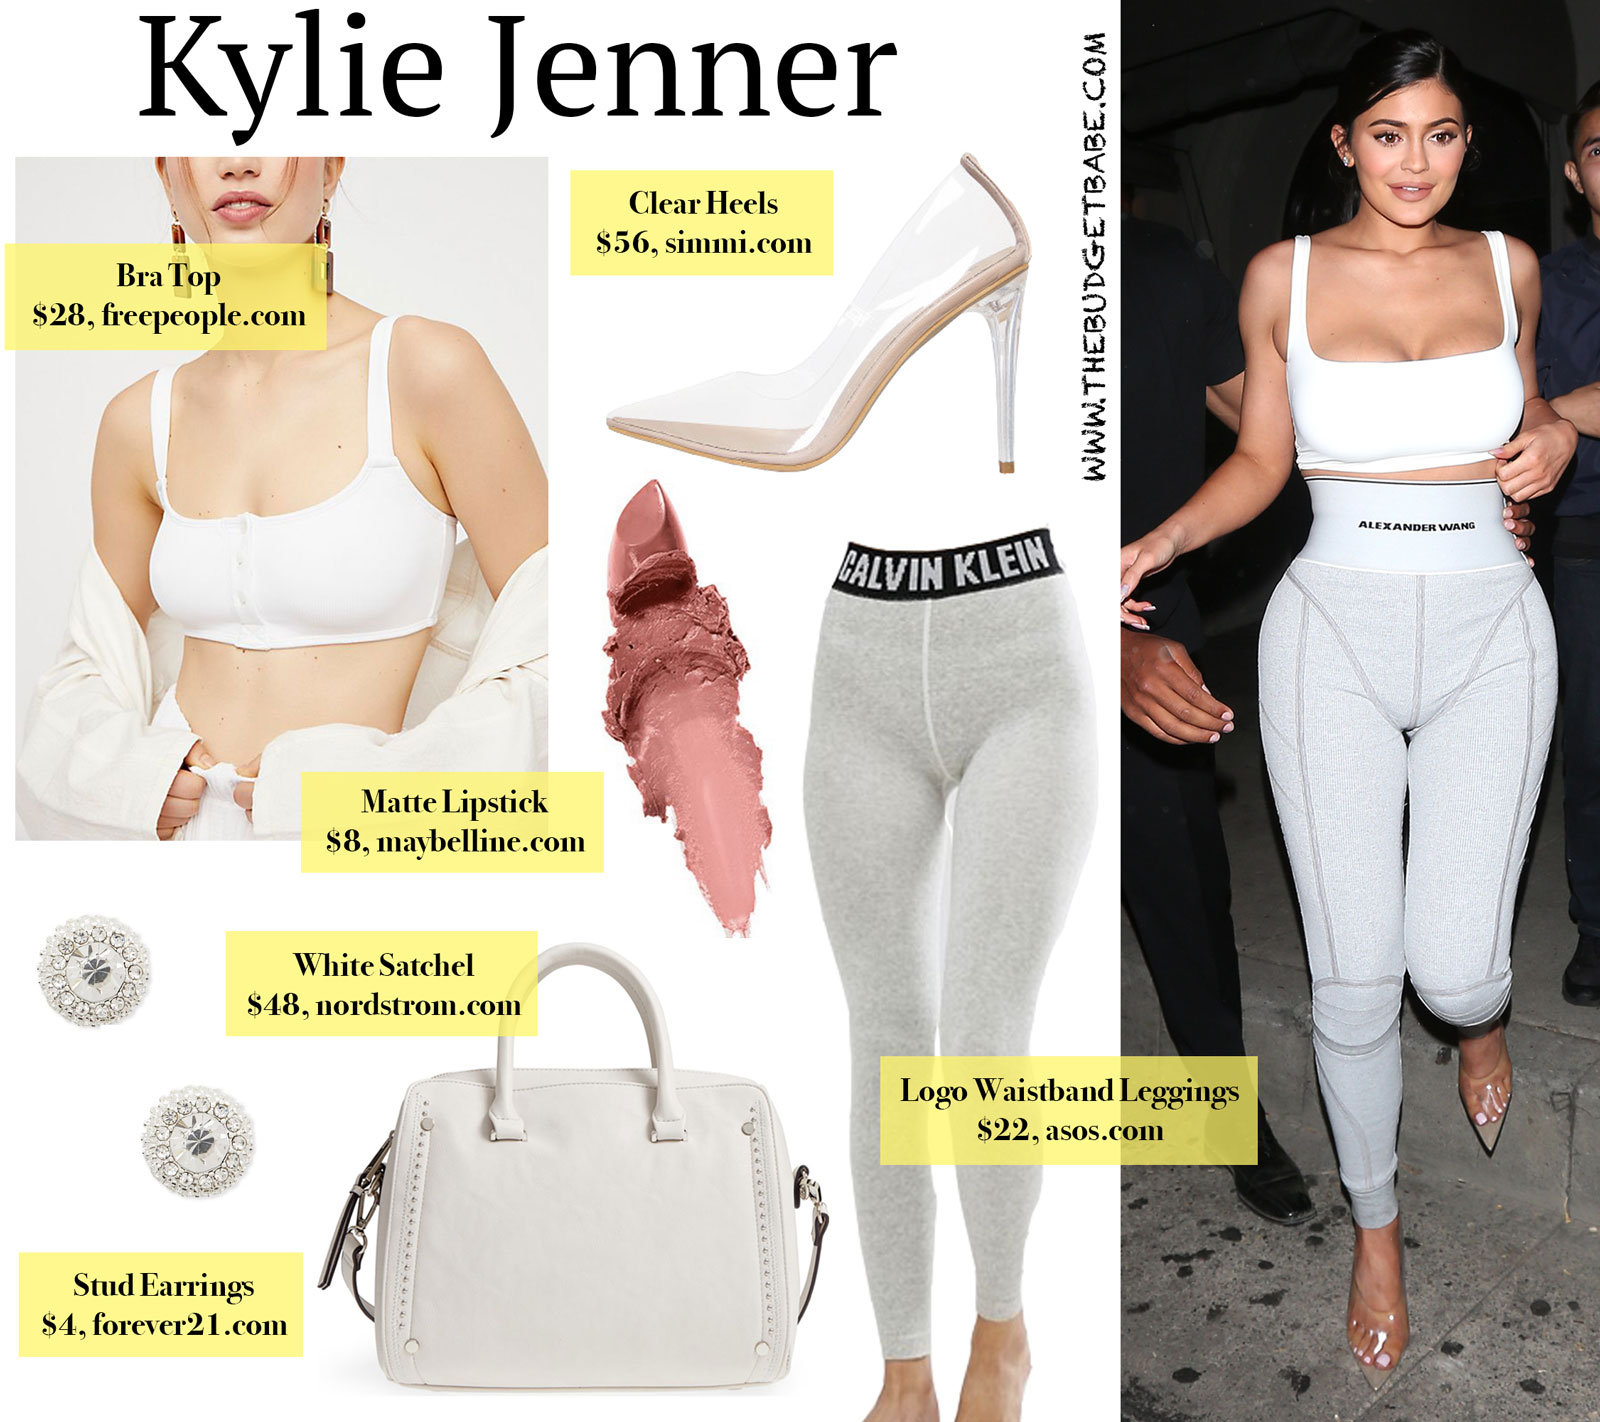 2db0d2fcdf0 Dress like Kylie Jenner wearing Alexander Wang Leggings and a White ...